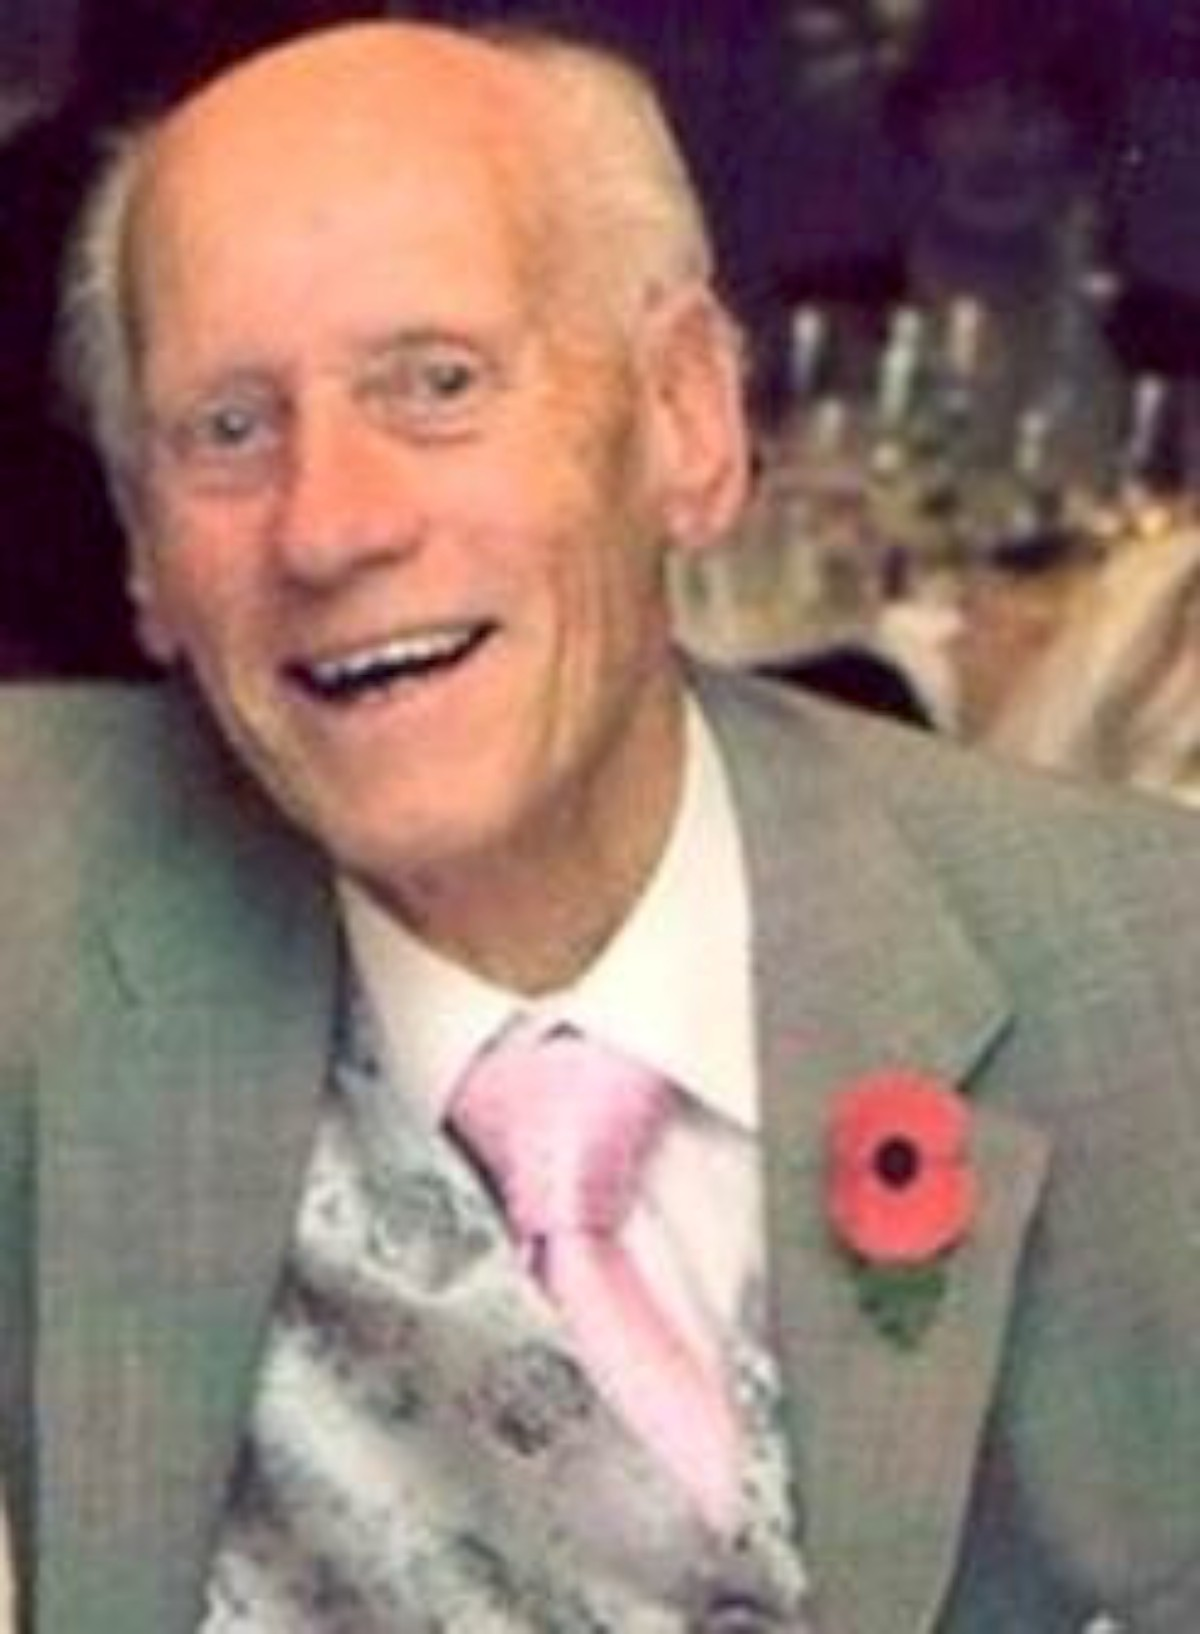 Man died at home hours after release from hospital, inquest hears